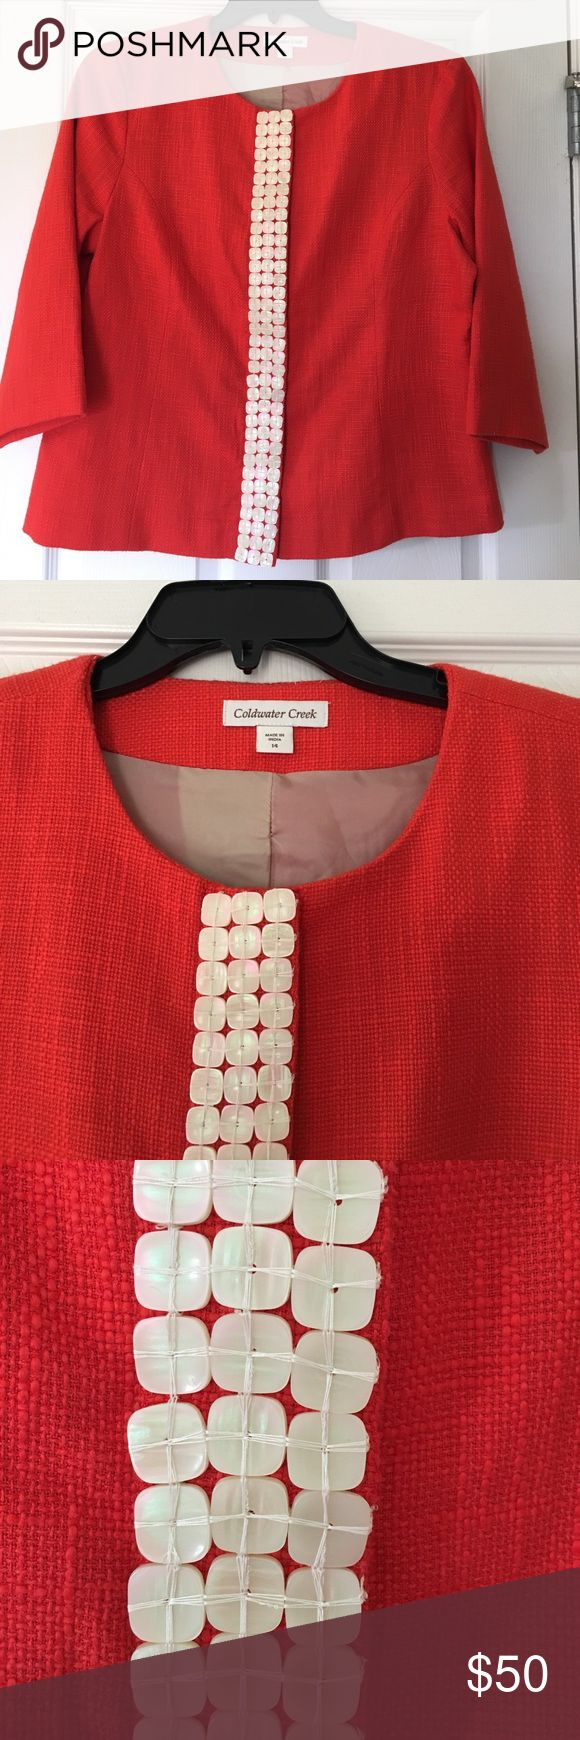 3/4 sleeve lined suit jacket with seashell buttons Coldwater Creek.  Tags removed, but never worn. Excellent for professional dress with suit pants or casual Friday with jeans. Coldwater Creek Jackets & Coats Blazers